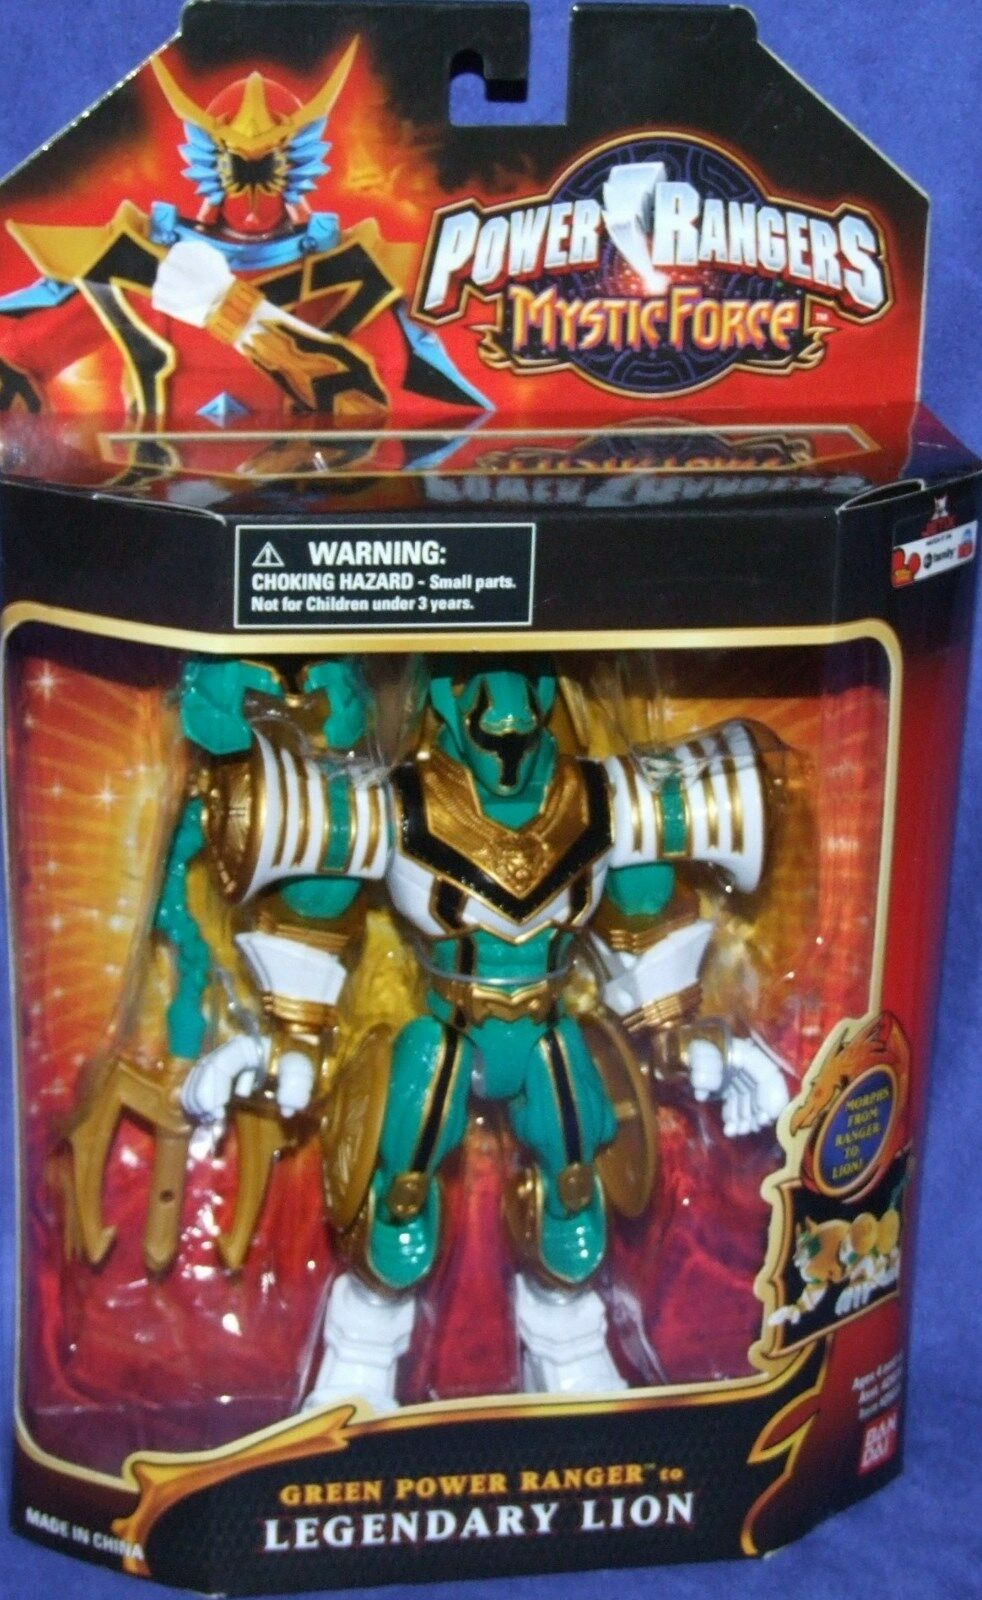 Power Rangers Mystic Force Grün Power Ranger to Legendary Lion New 7